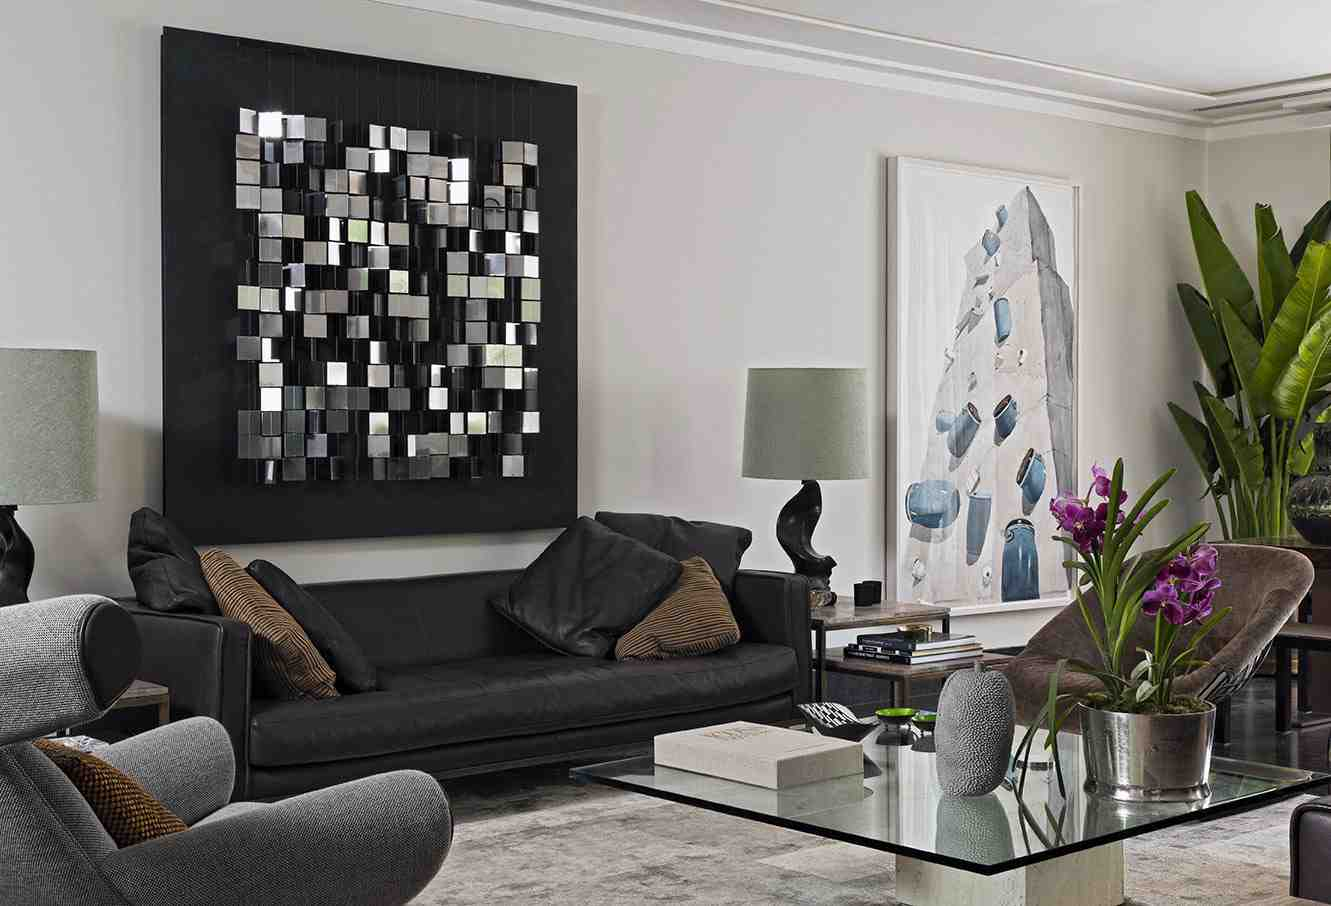 Living room wall decor 5 options decor ideasdecor ideas for Living wall decor ideas